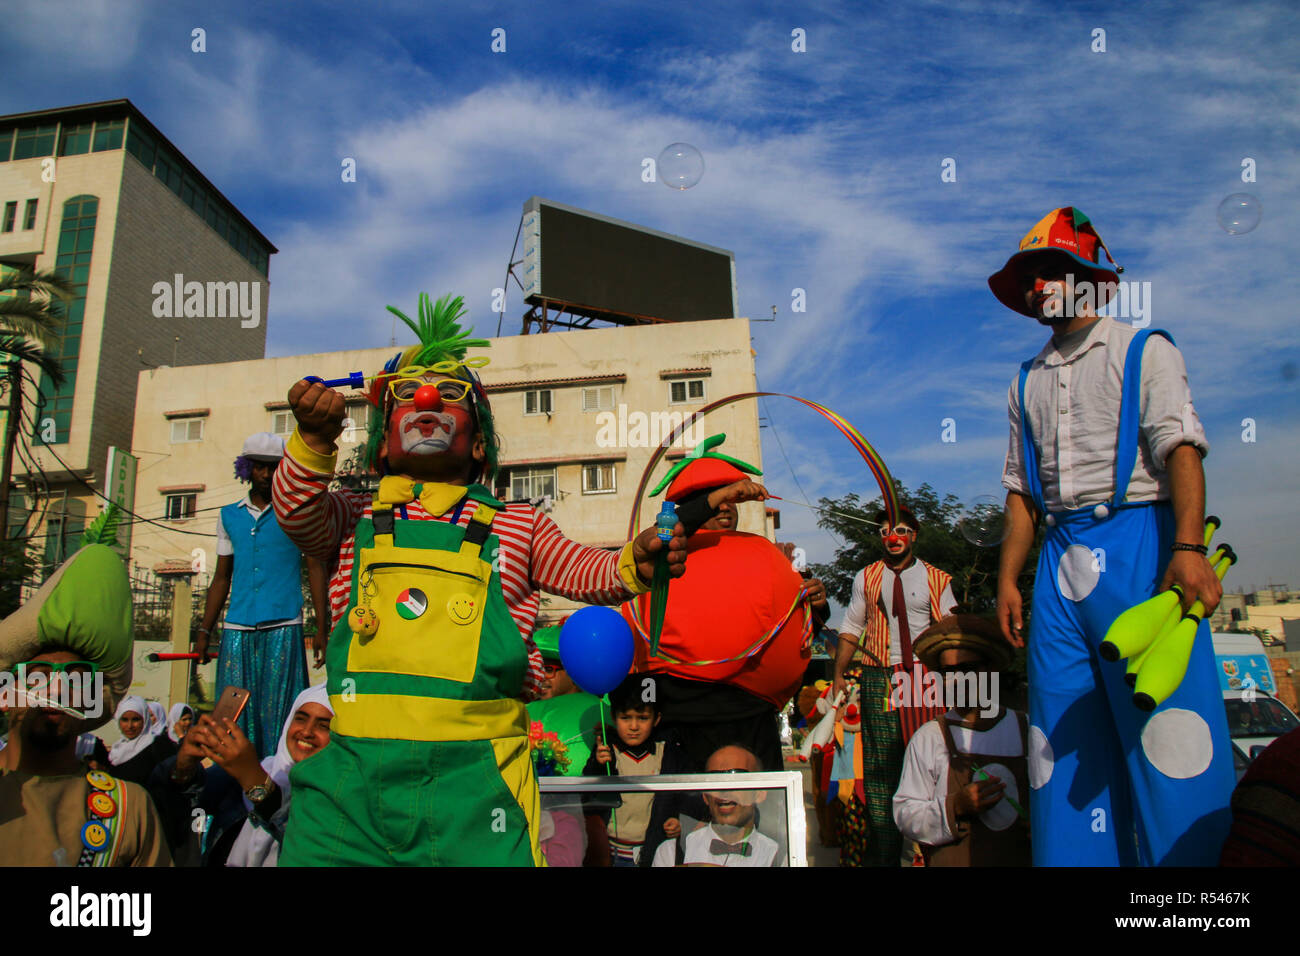 November 29, 2018 - A street carnival with a parade of customs, clowns, circus jugglers, and street artists, performing games of skill with clubs and balls, and animation with soap bubbles, takes place in Gaza City, proceeding from the Square of the Unknown Soldier to the port of Gaza. The event has been organised by the European Union, the Youth Without Borders Forum, and the Palestinian Vision Foundation to entertain children in Gaza who have witnessed extreme tension and violence over the last eight months (Credit Image: © Ahmad Hasaballah/IMAGESLIVE via ZUMA Wire) - Stock Image